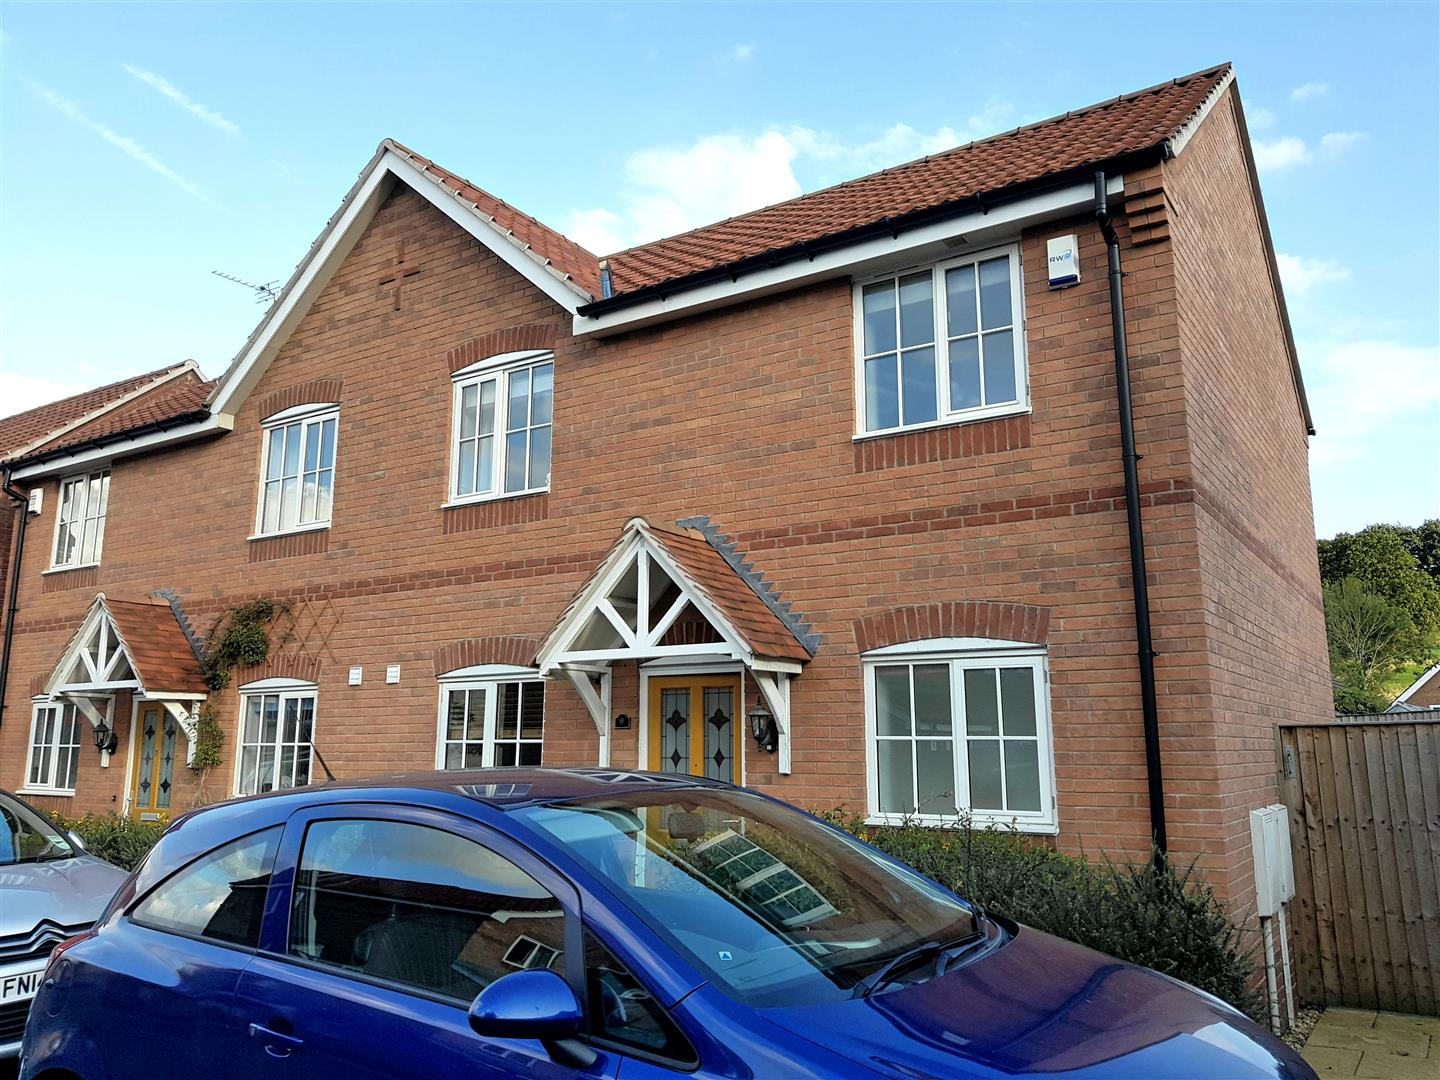 3 Bedrooms Semi Detached House for sale in Digby Court, Mansfield Woodhouse, Mansfield